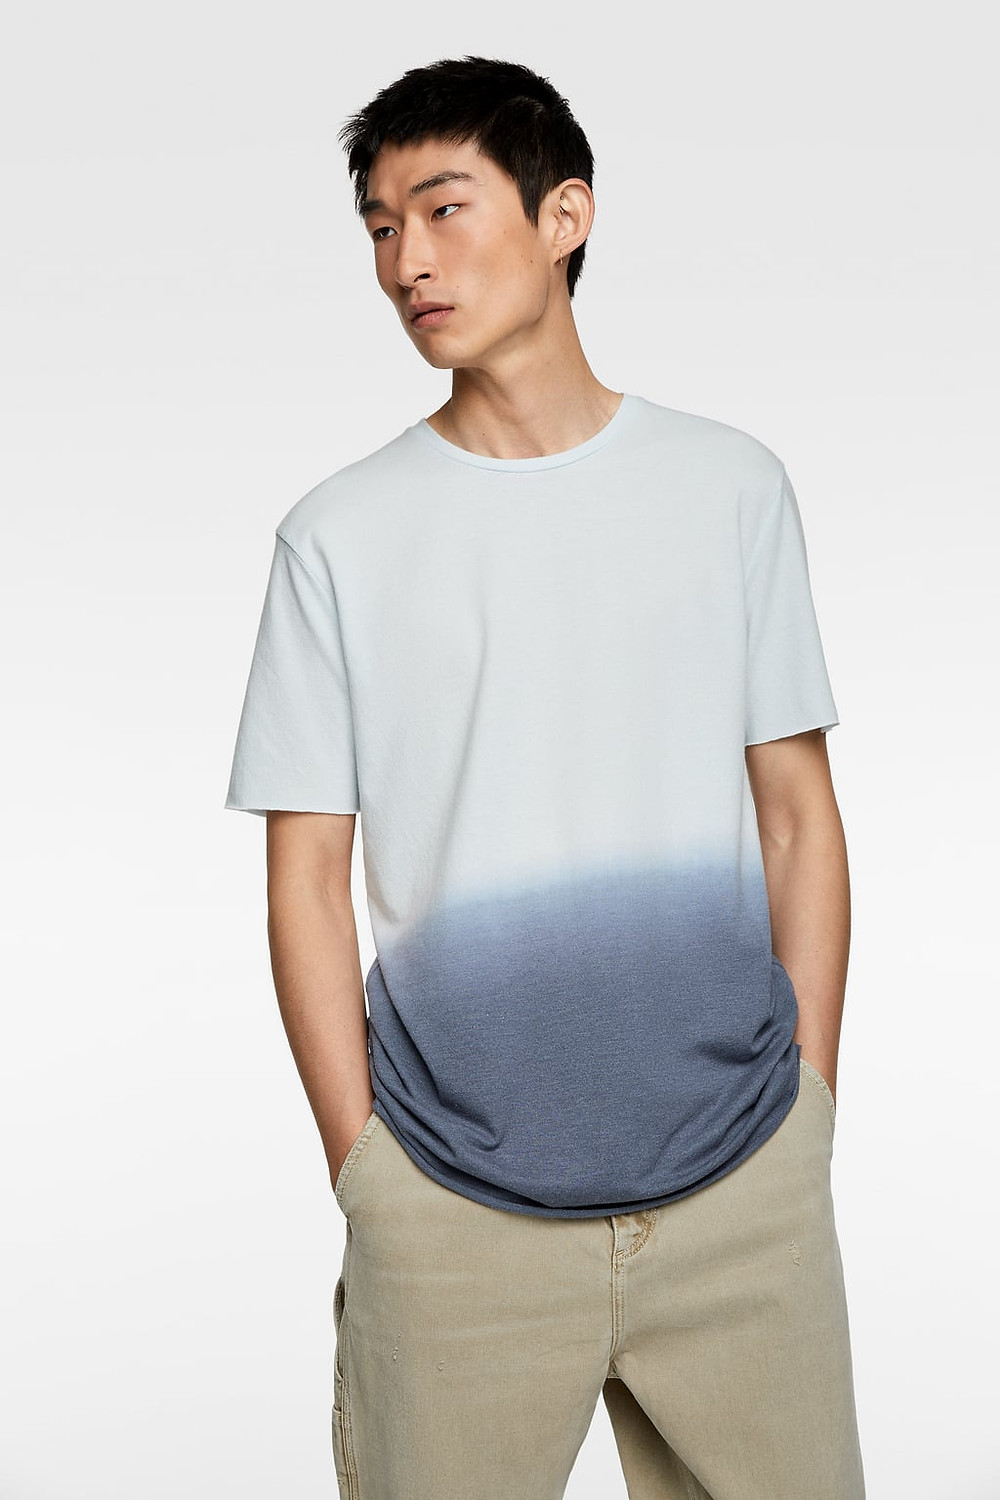 Photo of person wearing ombre t-shirt with hands in pocket